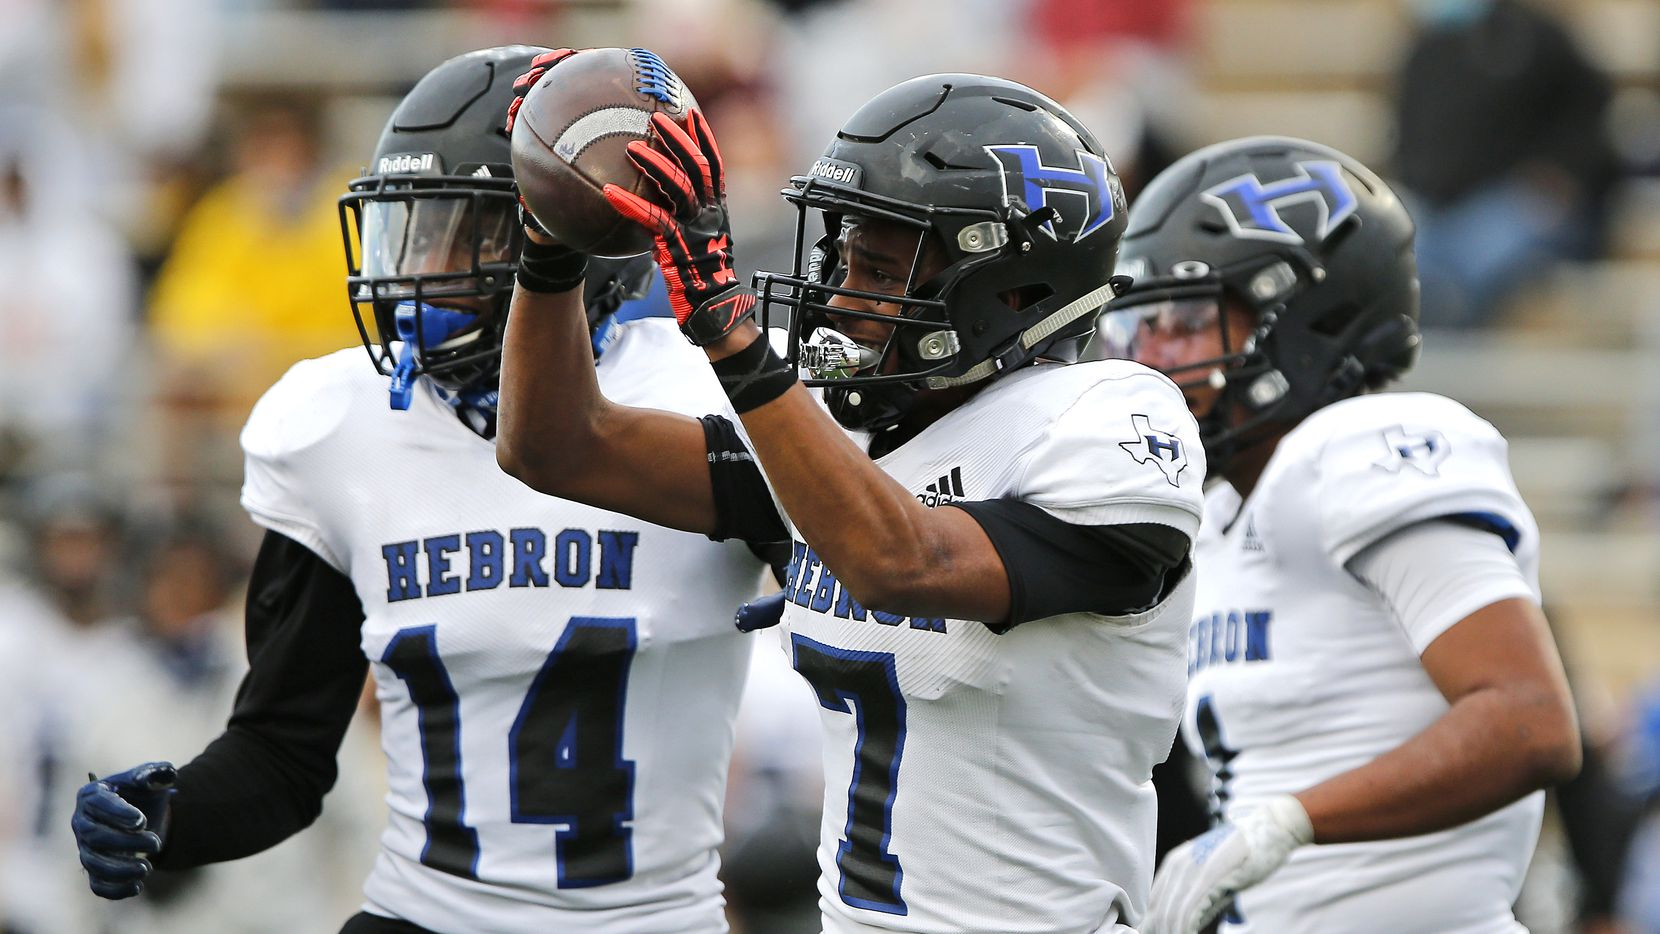 *Hebron High School defensive back Trenton Bronaugh (7) holds up the ball he intercepted near the end of the game as Plano West High School hosted Hebron High School in a District 6-6A football game at Clark Stadium in Plano on Friday, November 27, 2020.